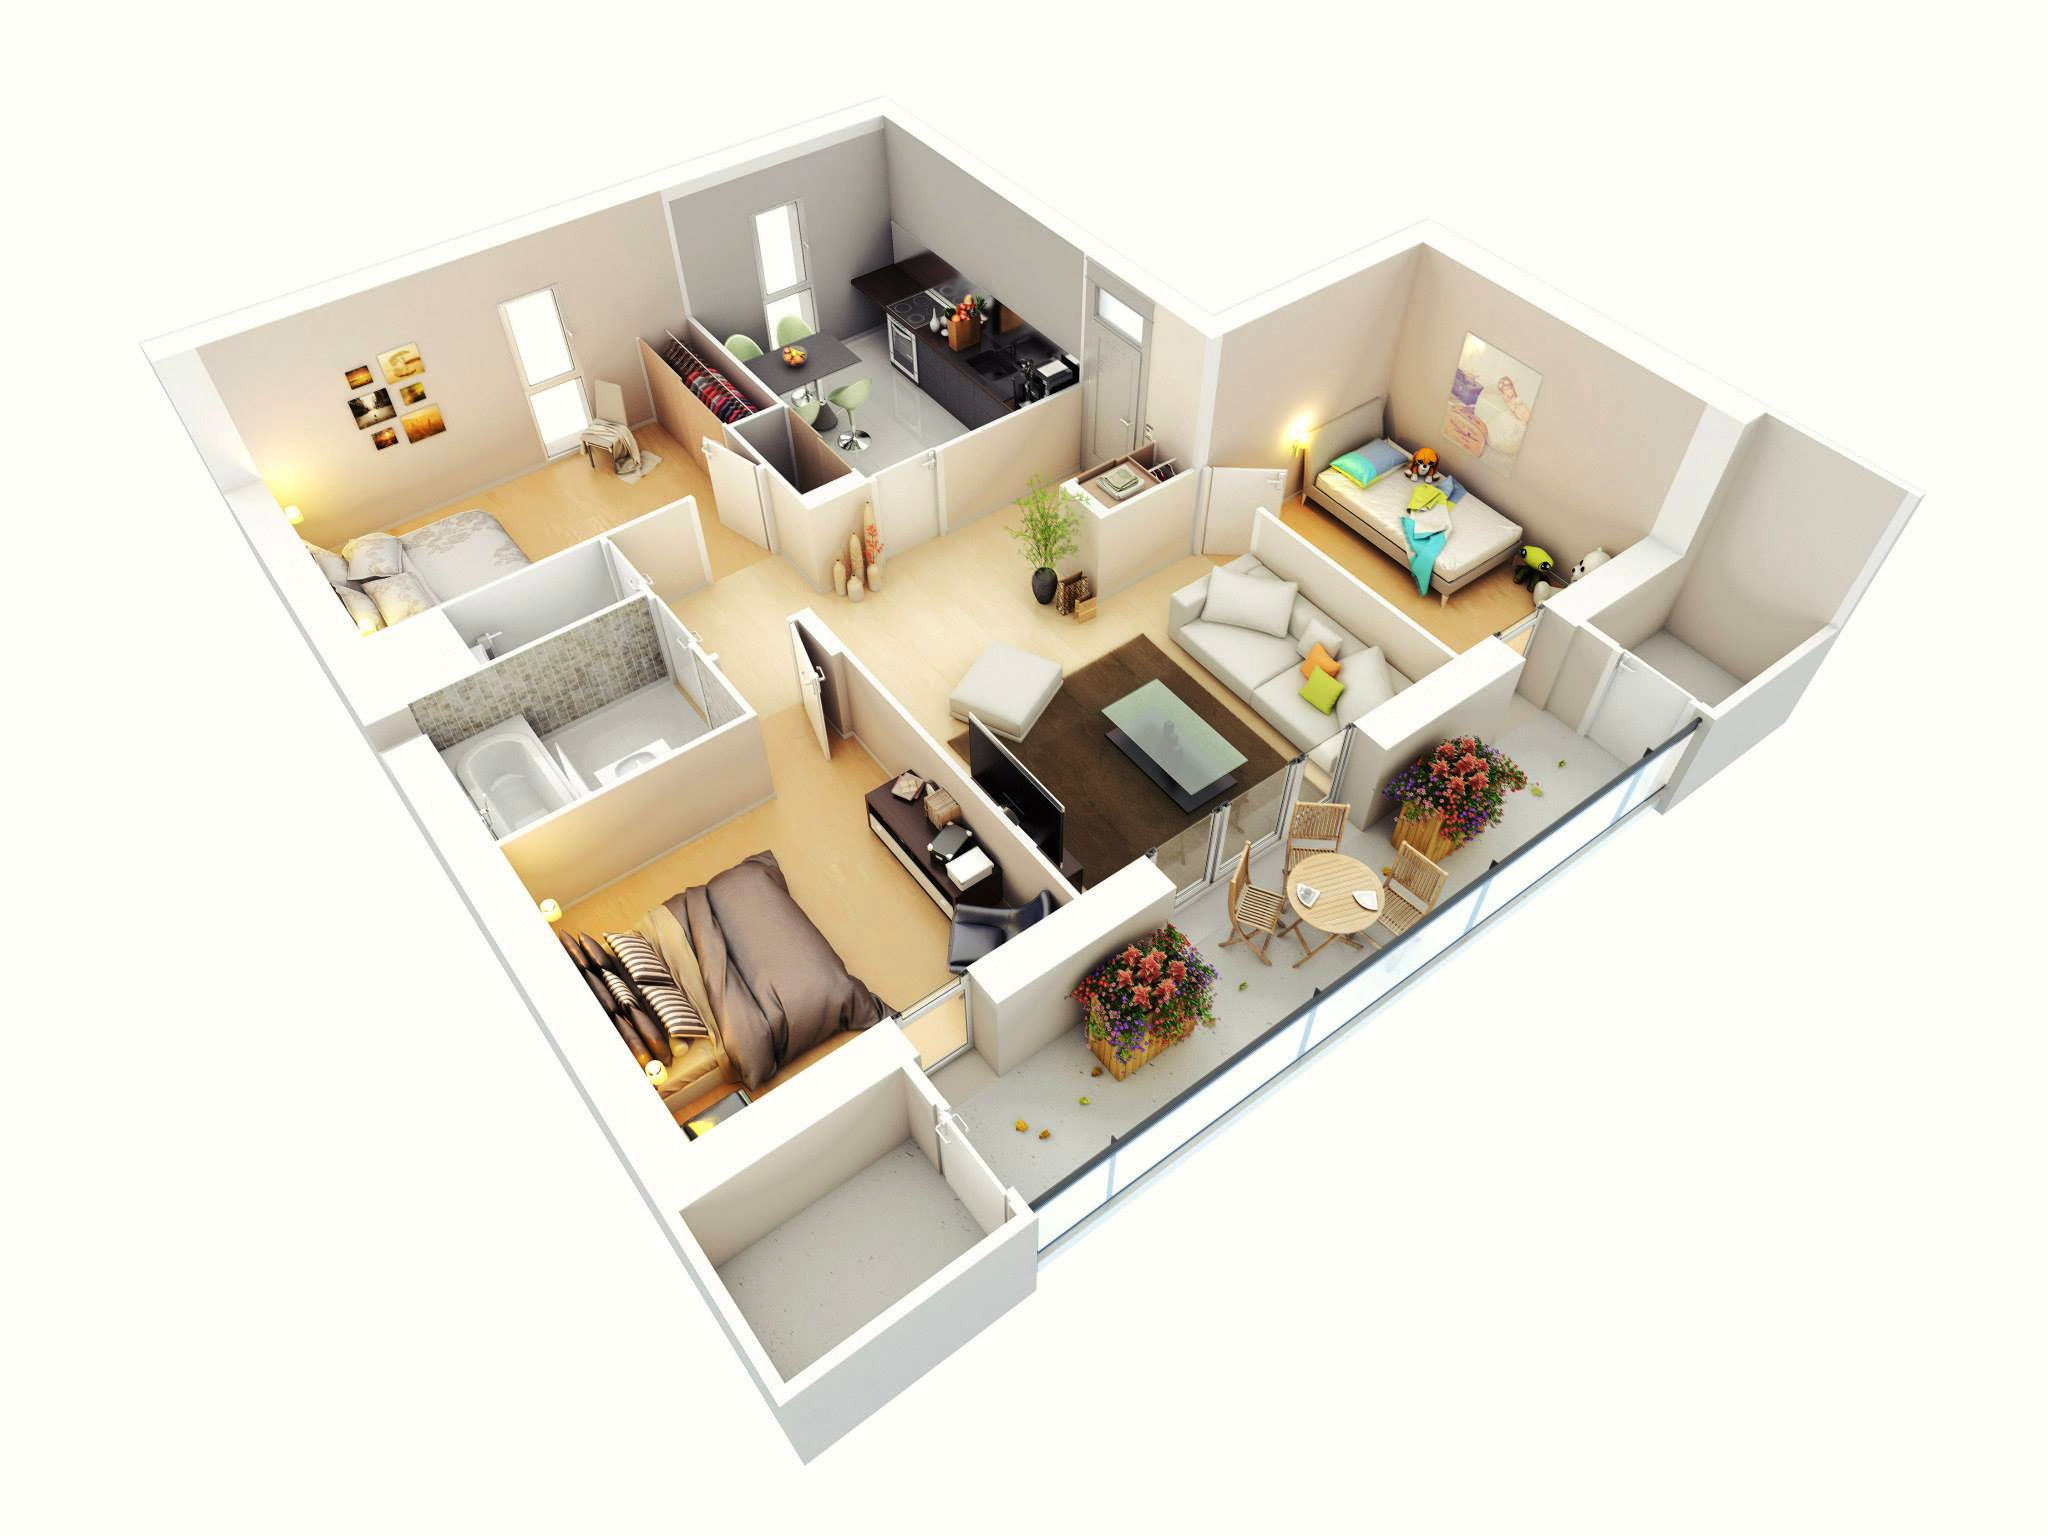 25 More 3 Bedroom Floor Plans